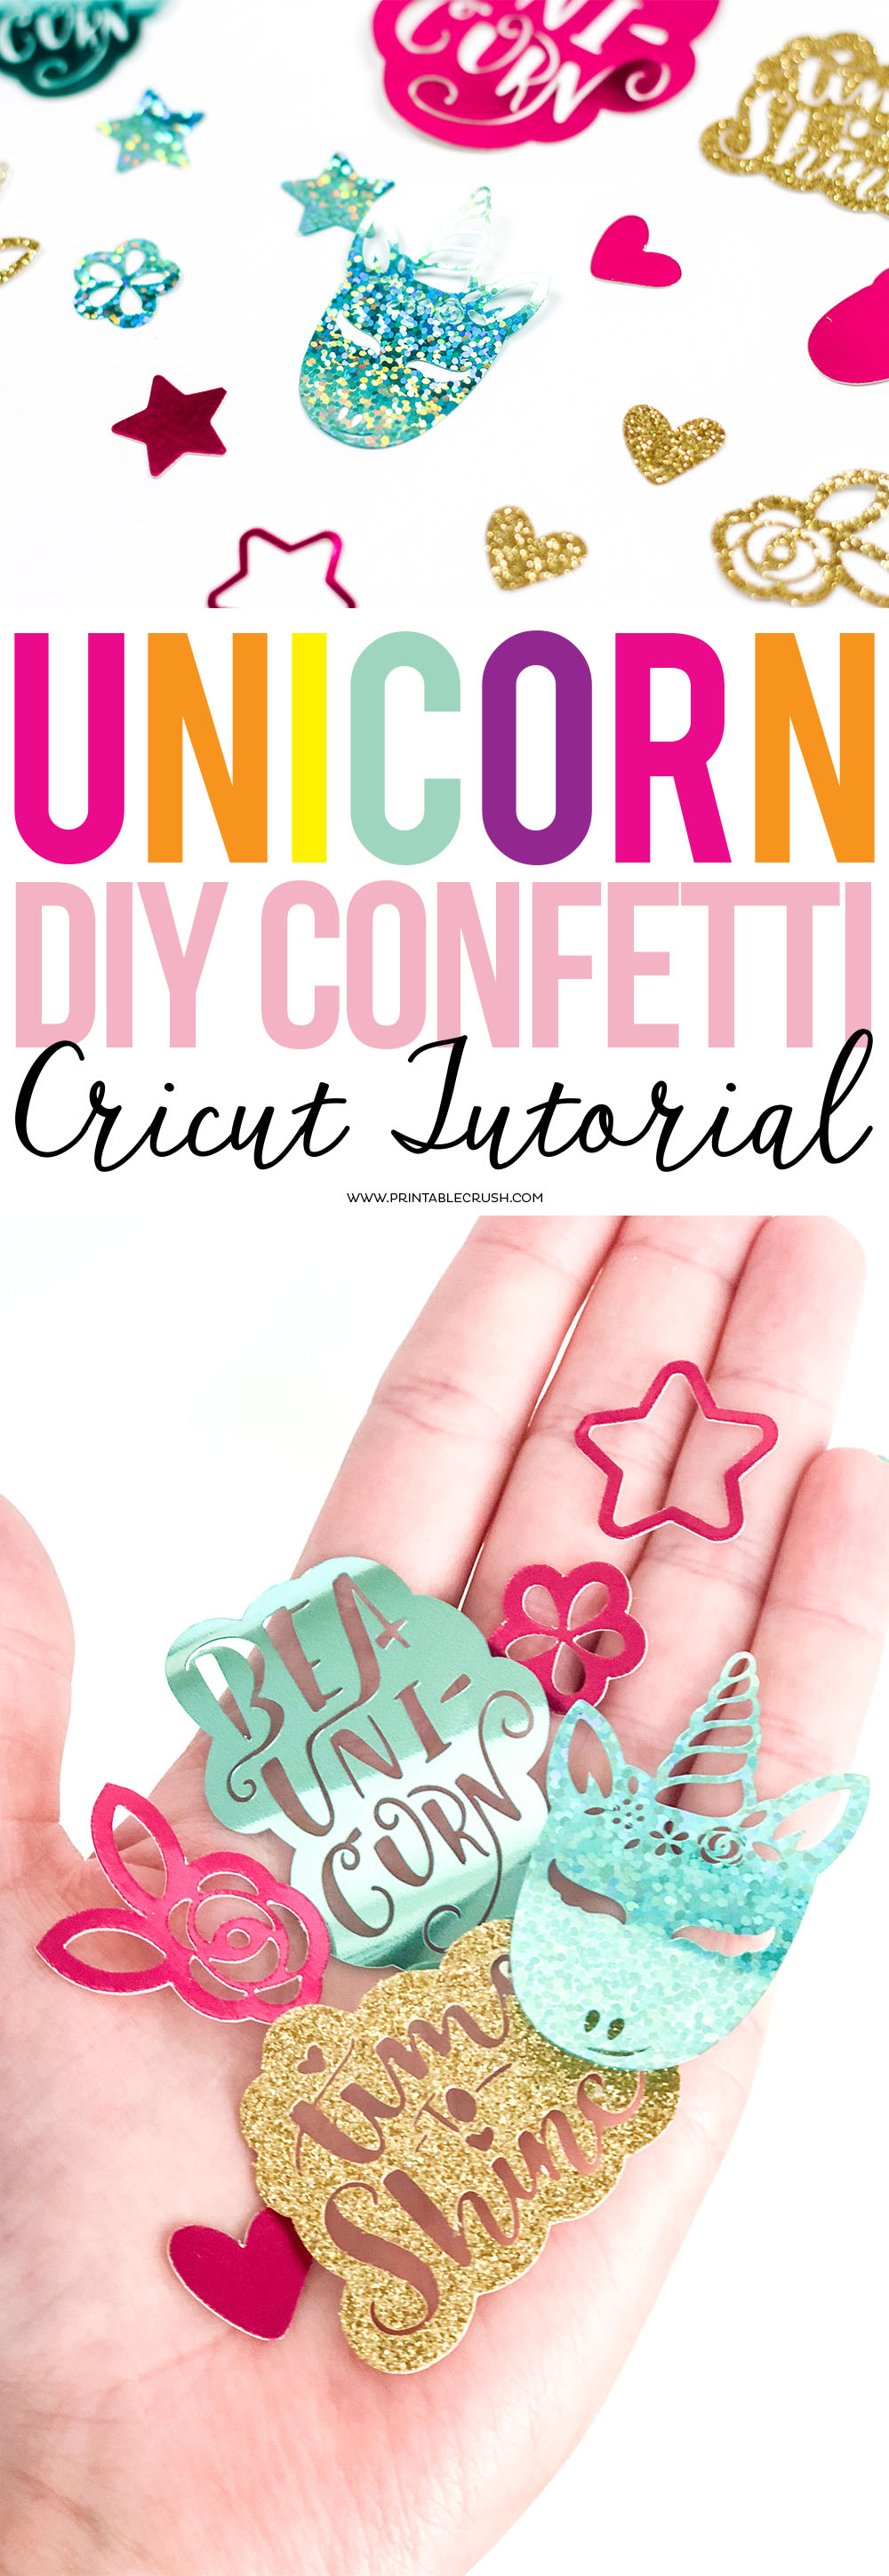 This fun Unicorn DIY Confetti Cricut Tutorial is super easy, and you will be amazed at how intricate the Maker can cut on the Cricut party foil! #DIYconfetti #partydecor #partydecorations #unicornparty #unicornsvgfiles #svgfiles #unicorncutfiles